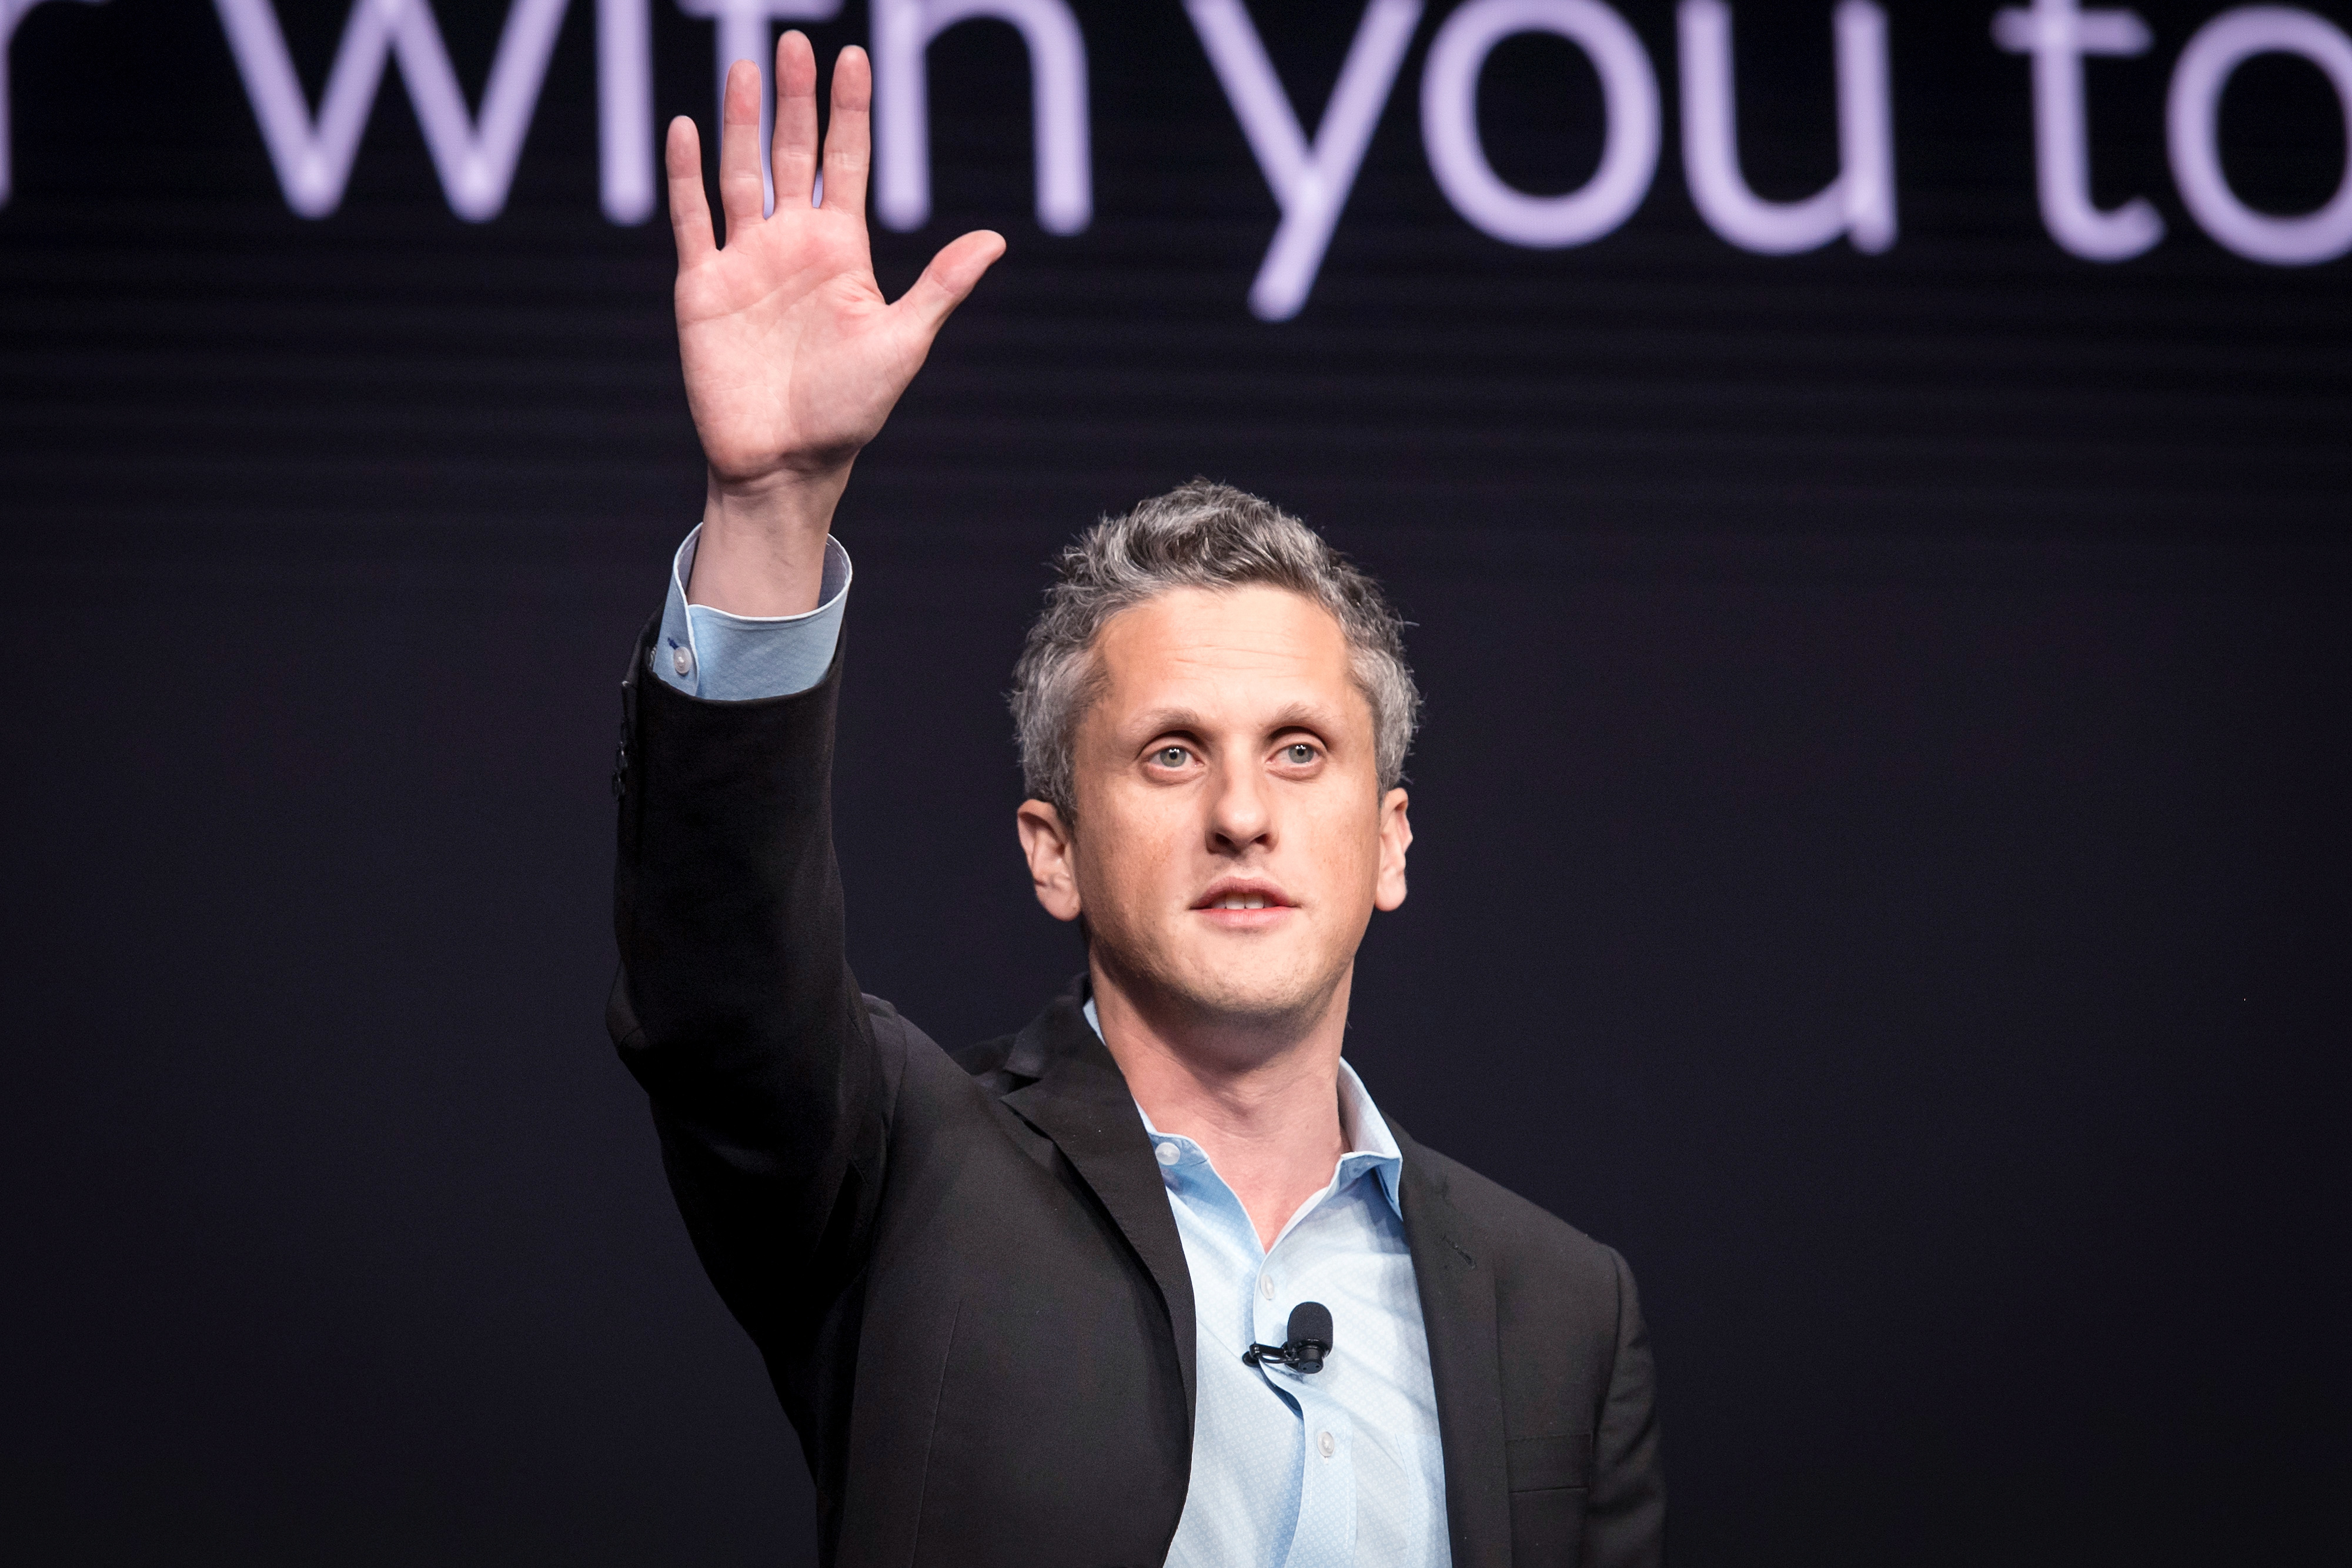 Box CEO Aaron Levie Weighs In On Starboard Value's Shakeup Effort